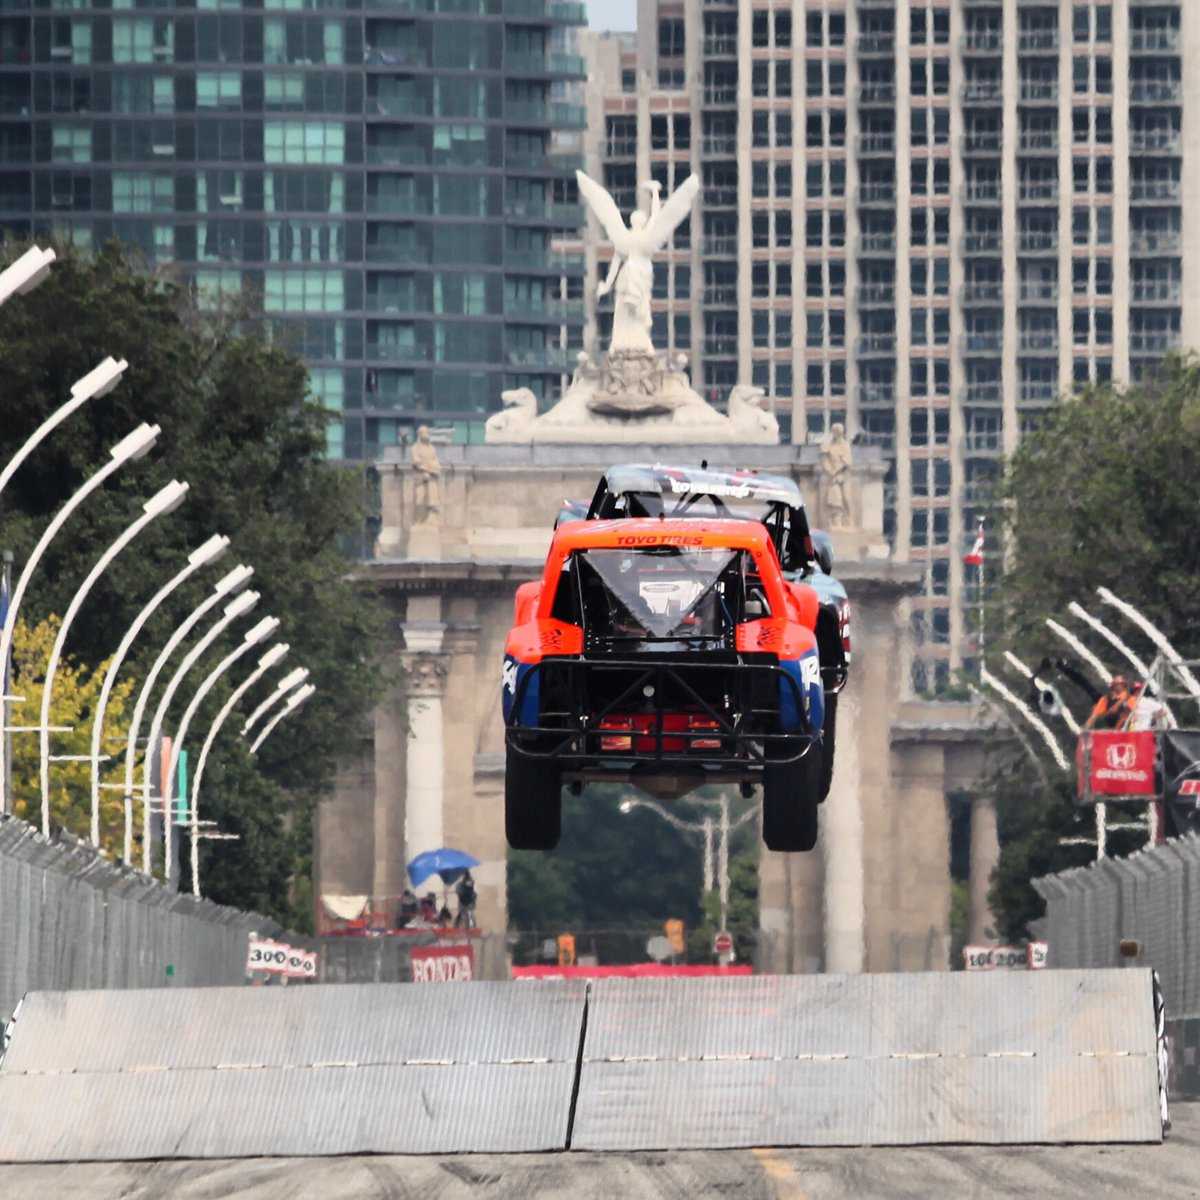 Coming back to @hondaindy Toronto July 12-14 Get your tickets at hondaindy.com/tickets